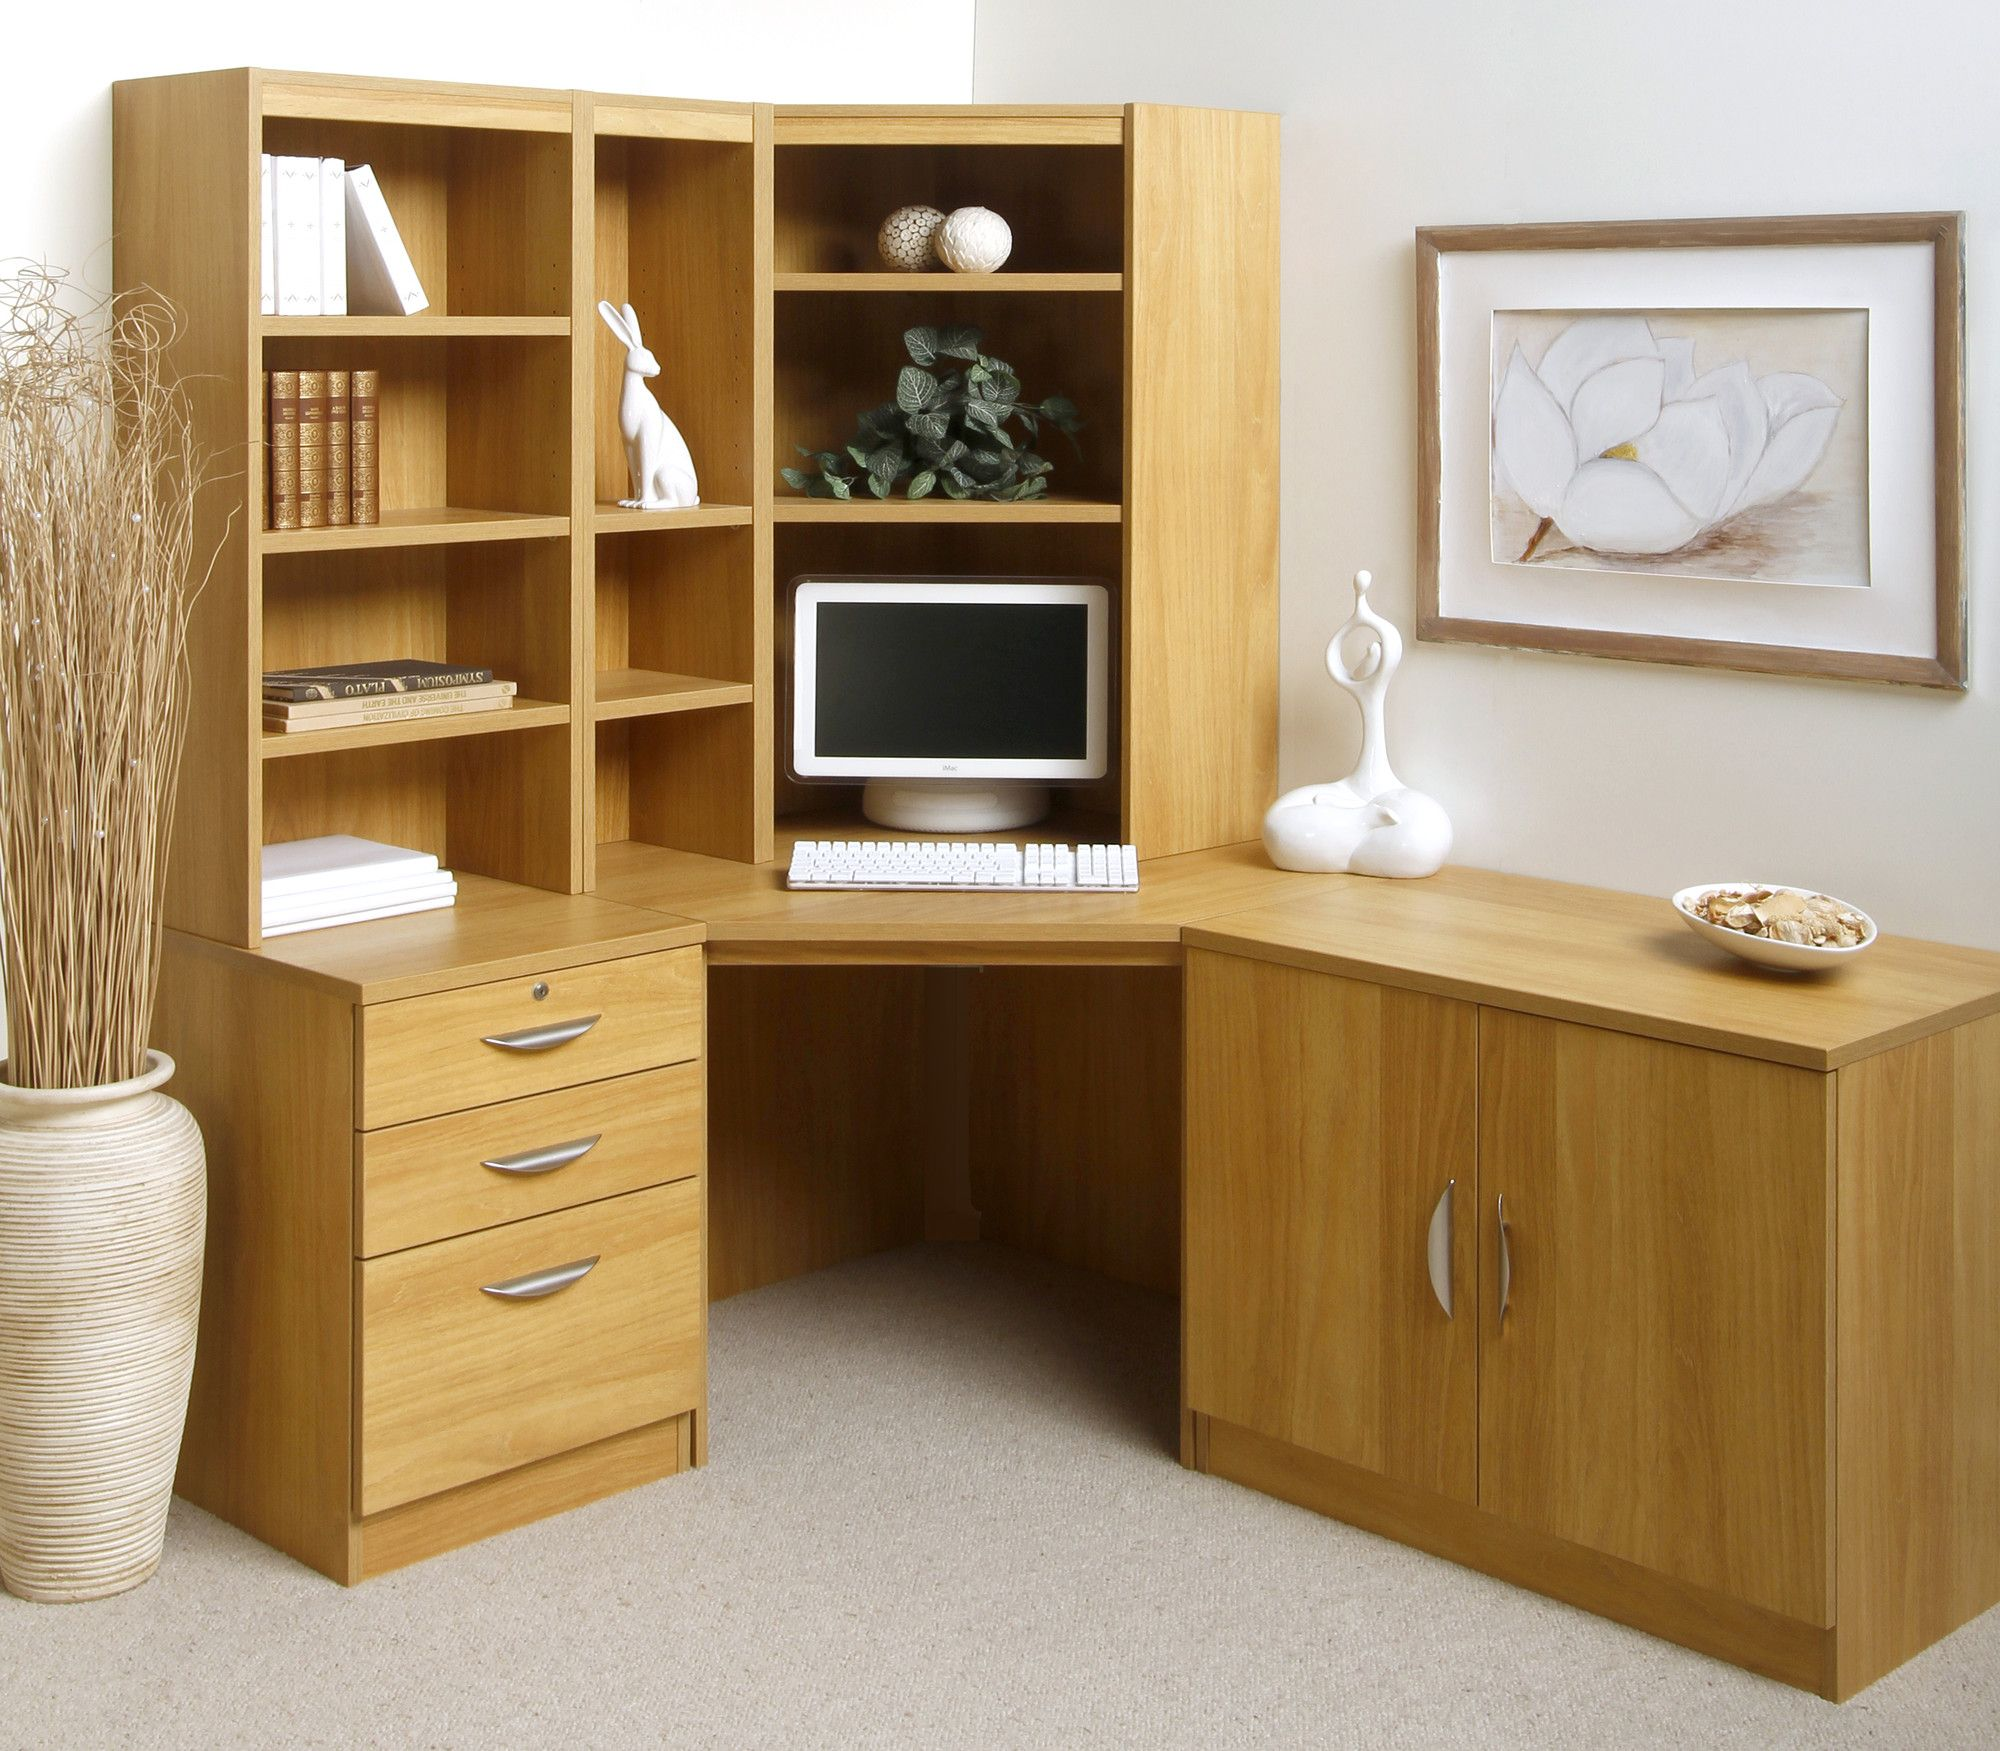 Furniture | Affordable Office Supplies & Office Furniture | Corner